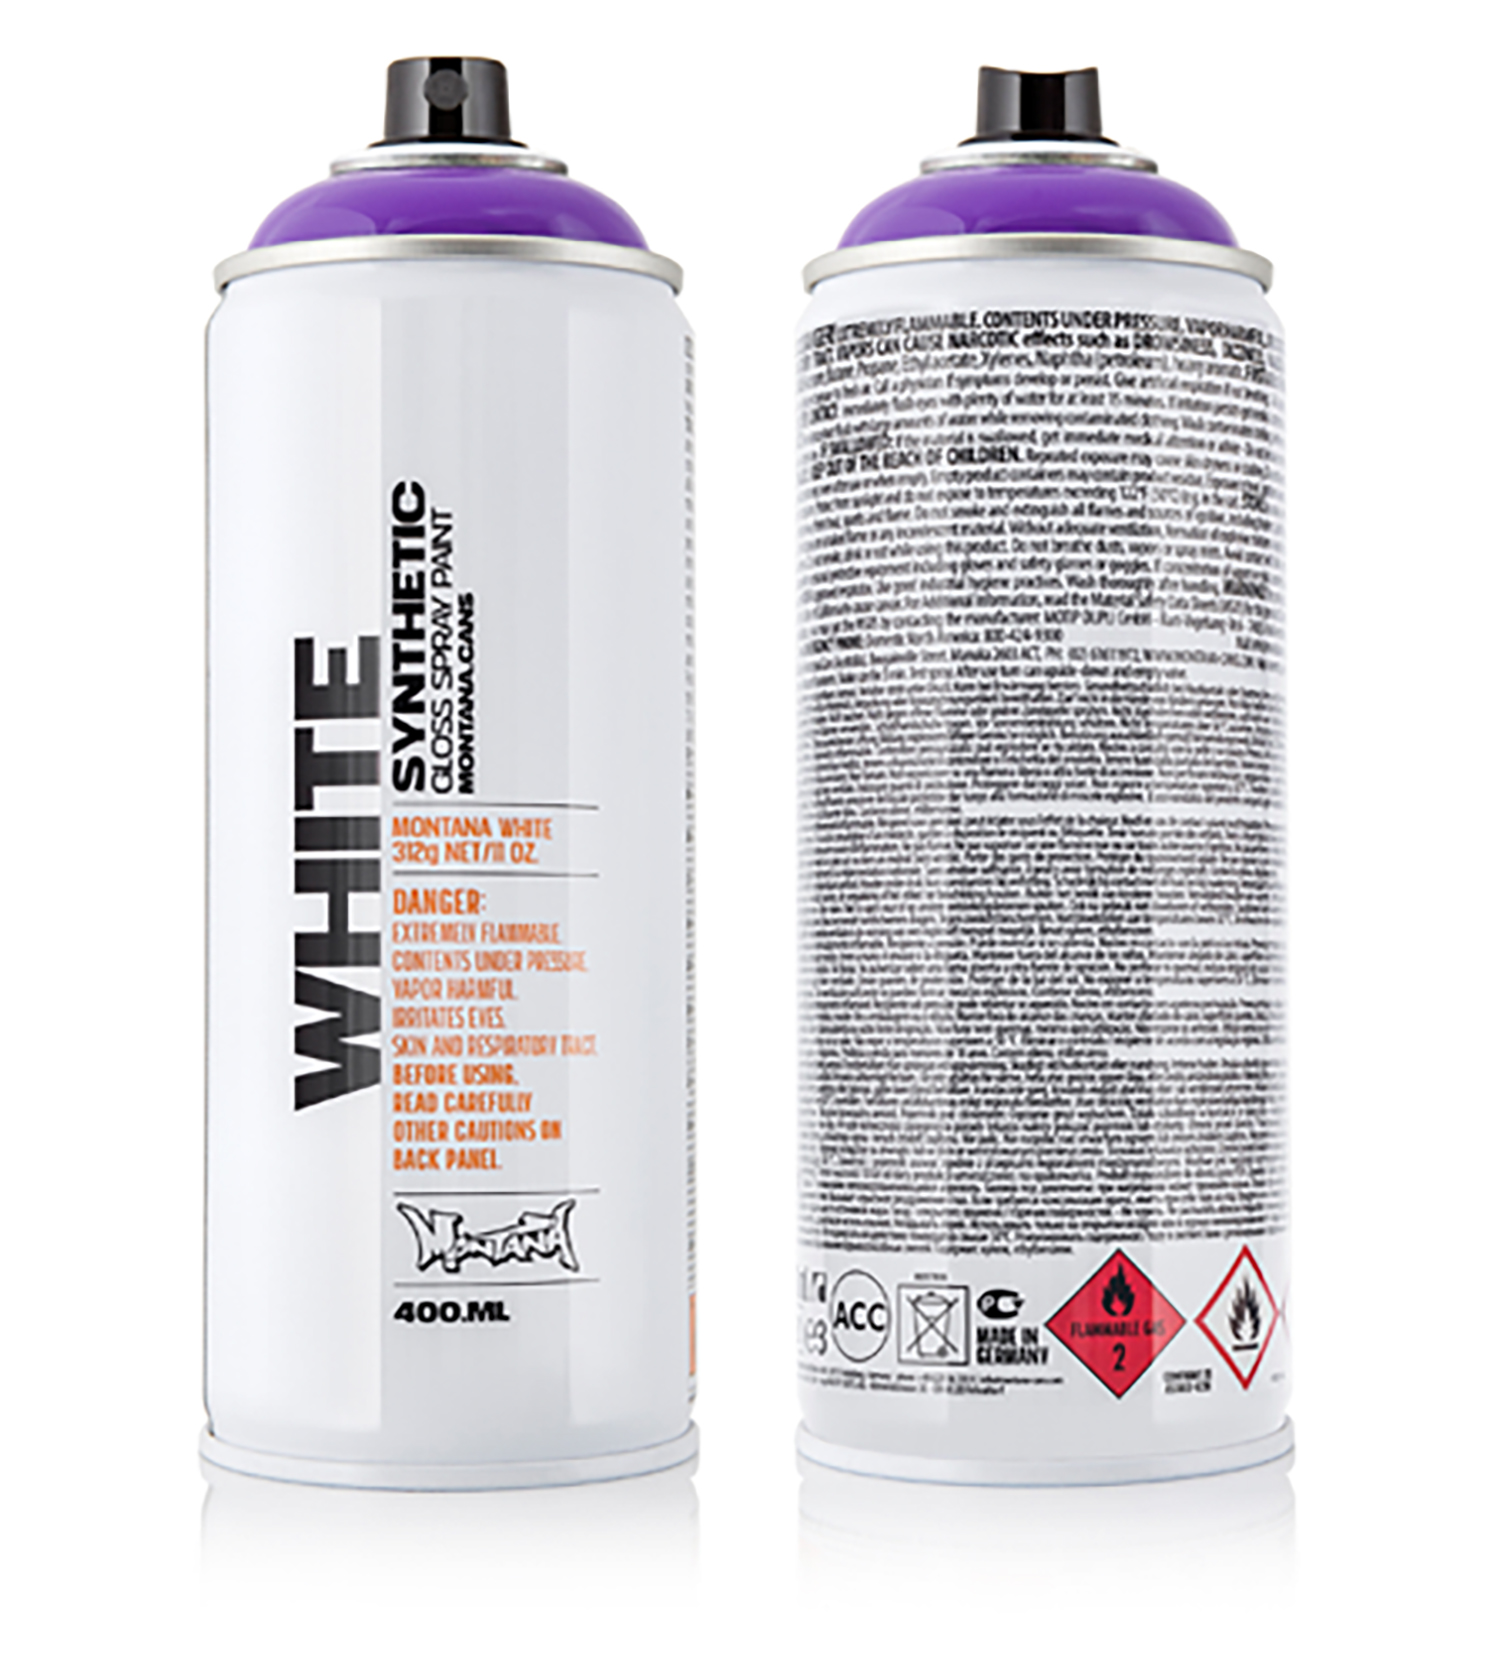 MONTANA-WHITE-SPRAY-400ML-4150